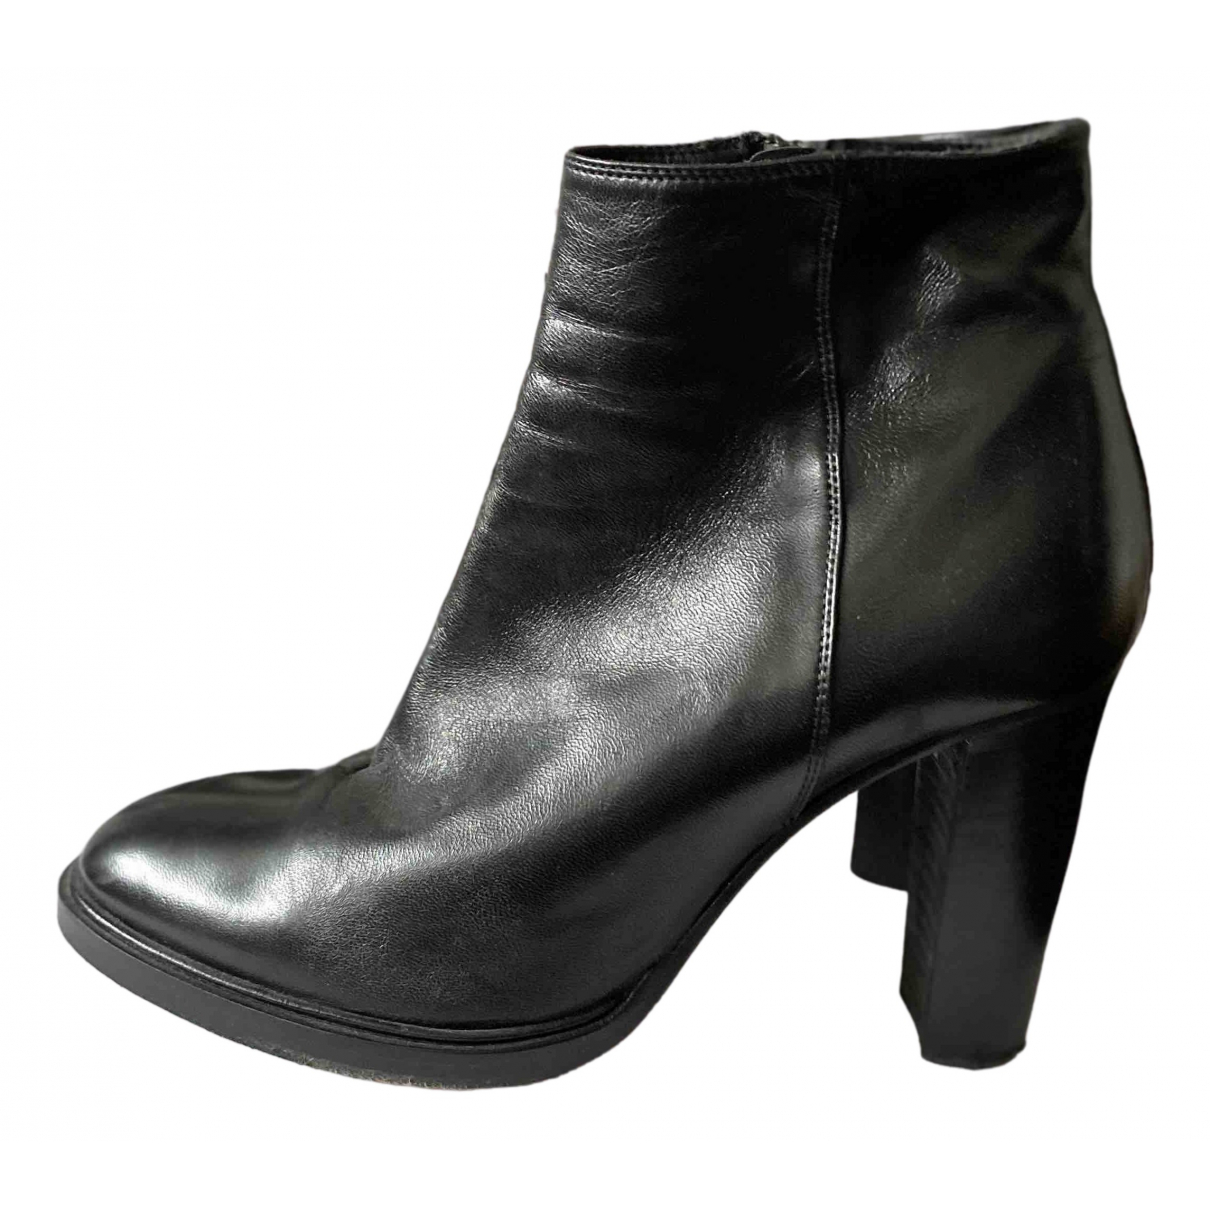 Prego N Black Leather Ankle boots for Women 39 EU